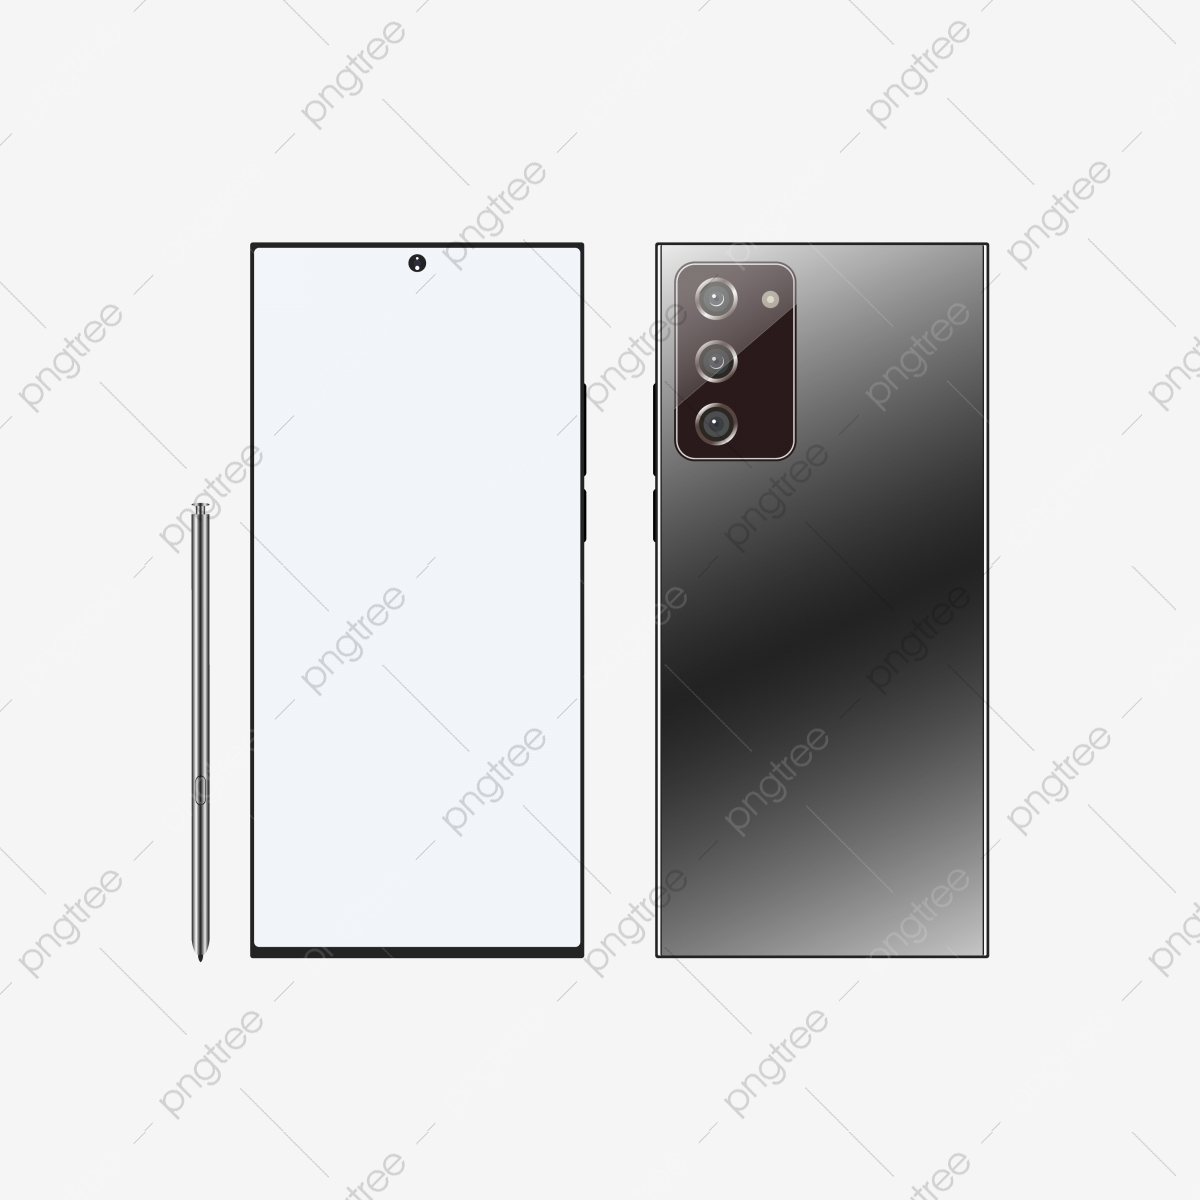 New Black Samsung Galaxy Note 20 Ultra Mockup Vector Illustration New Black Samsung Png And Vector With Transparent Background For Free Download